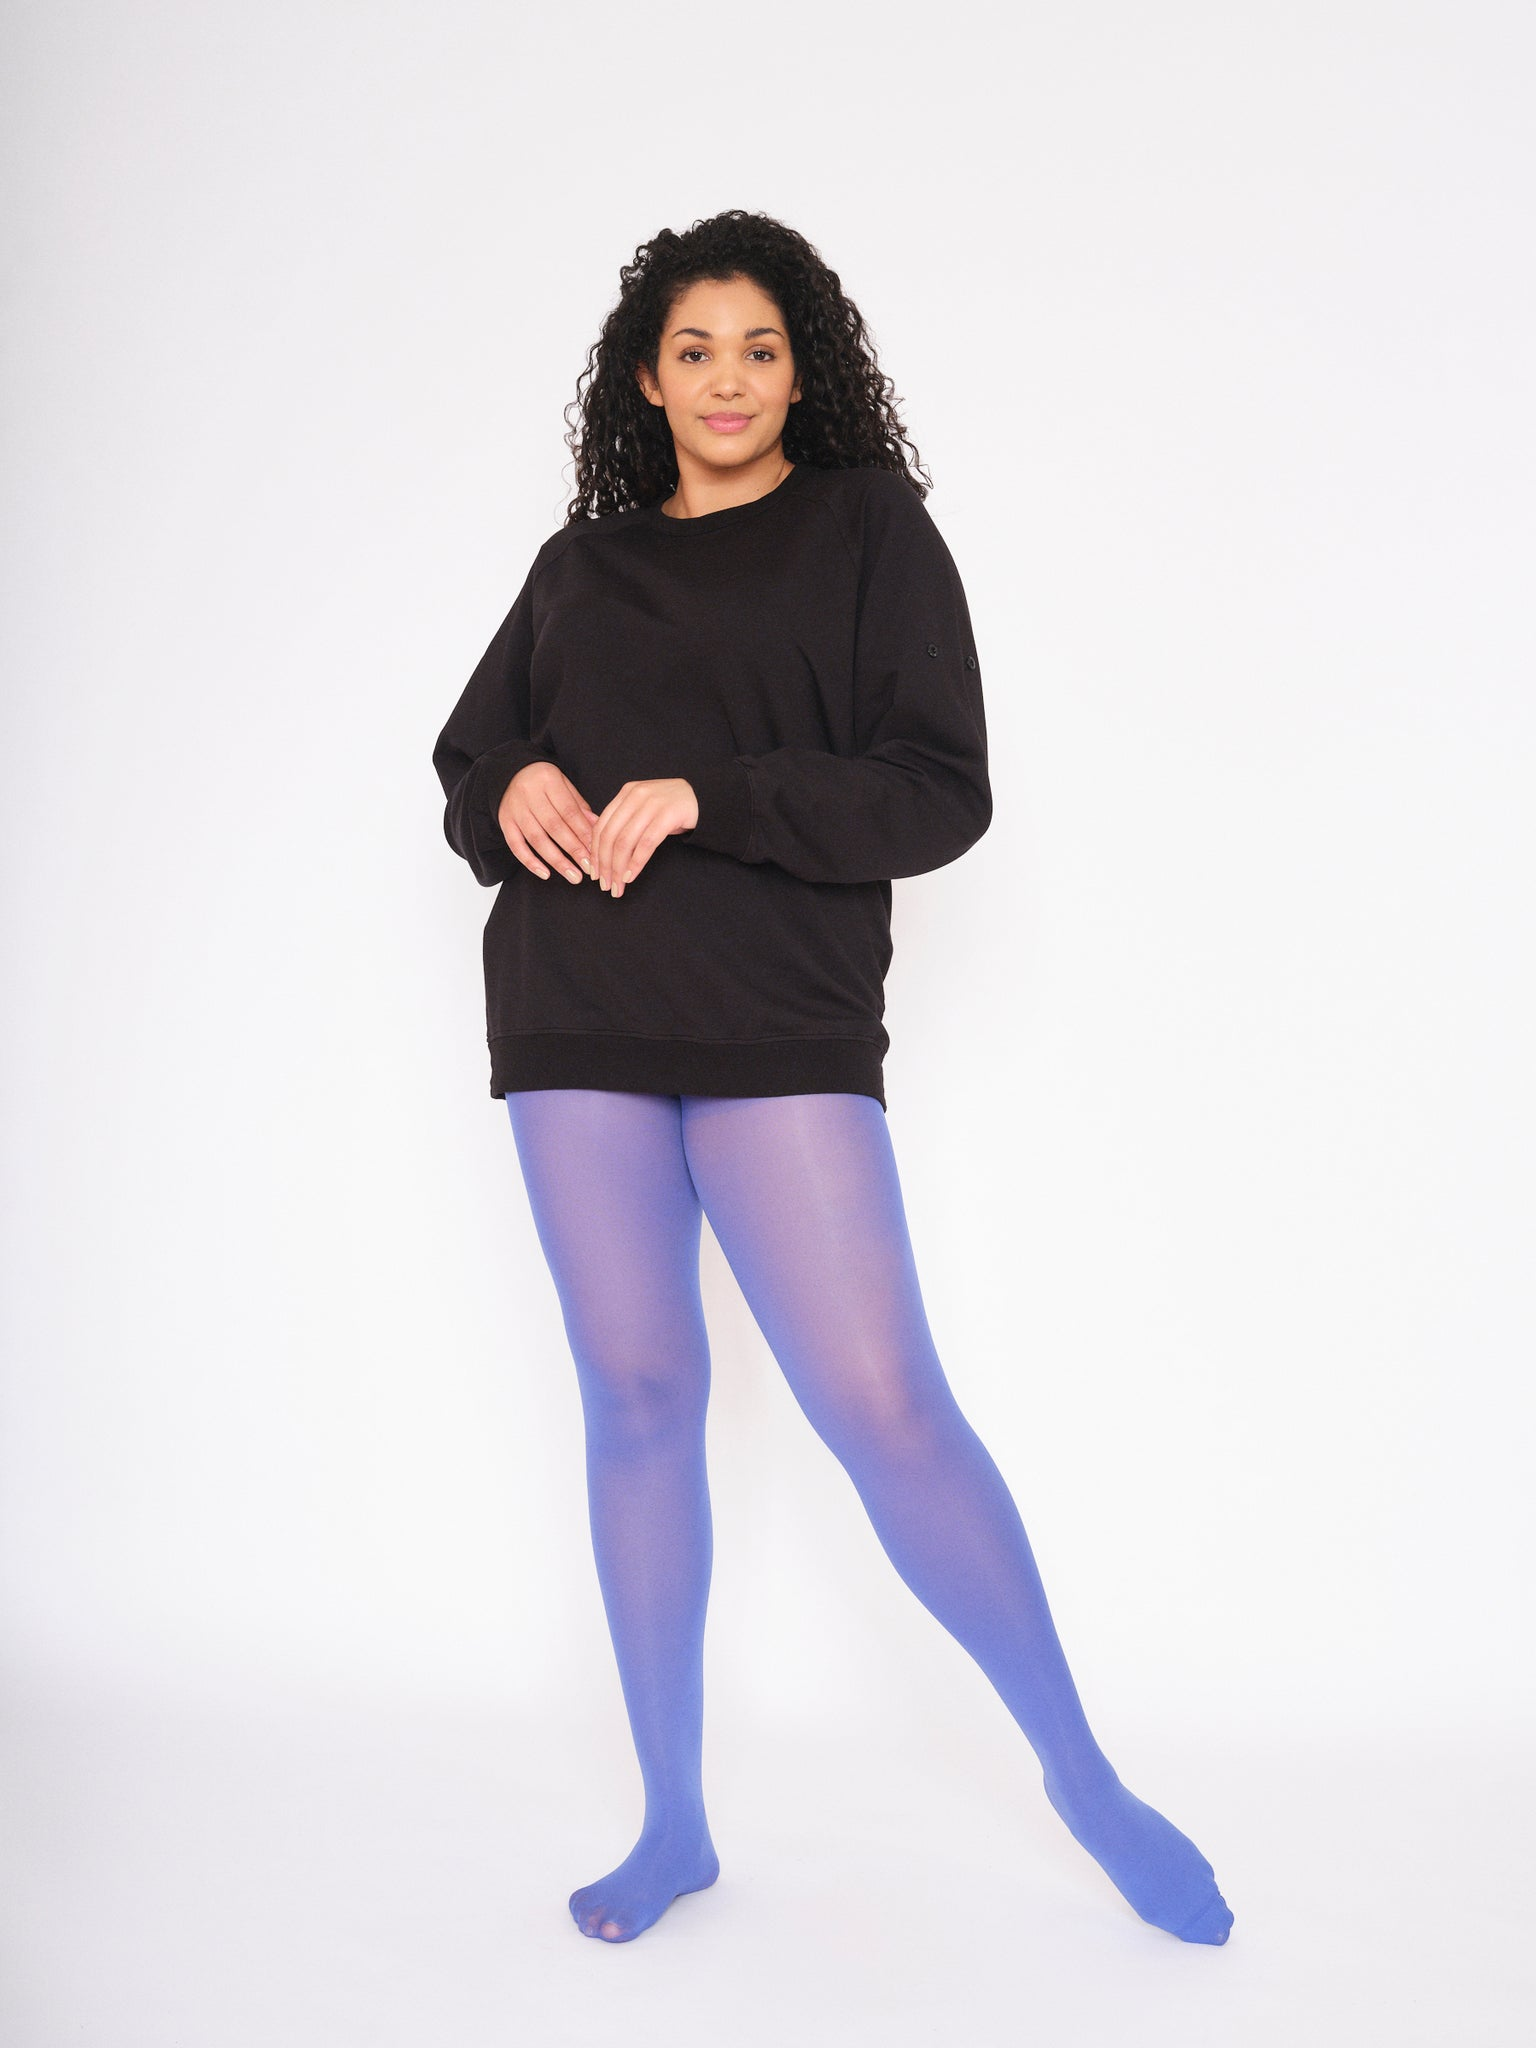 MS. SHAPE Opaque Tights 50 Denier